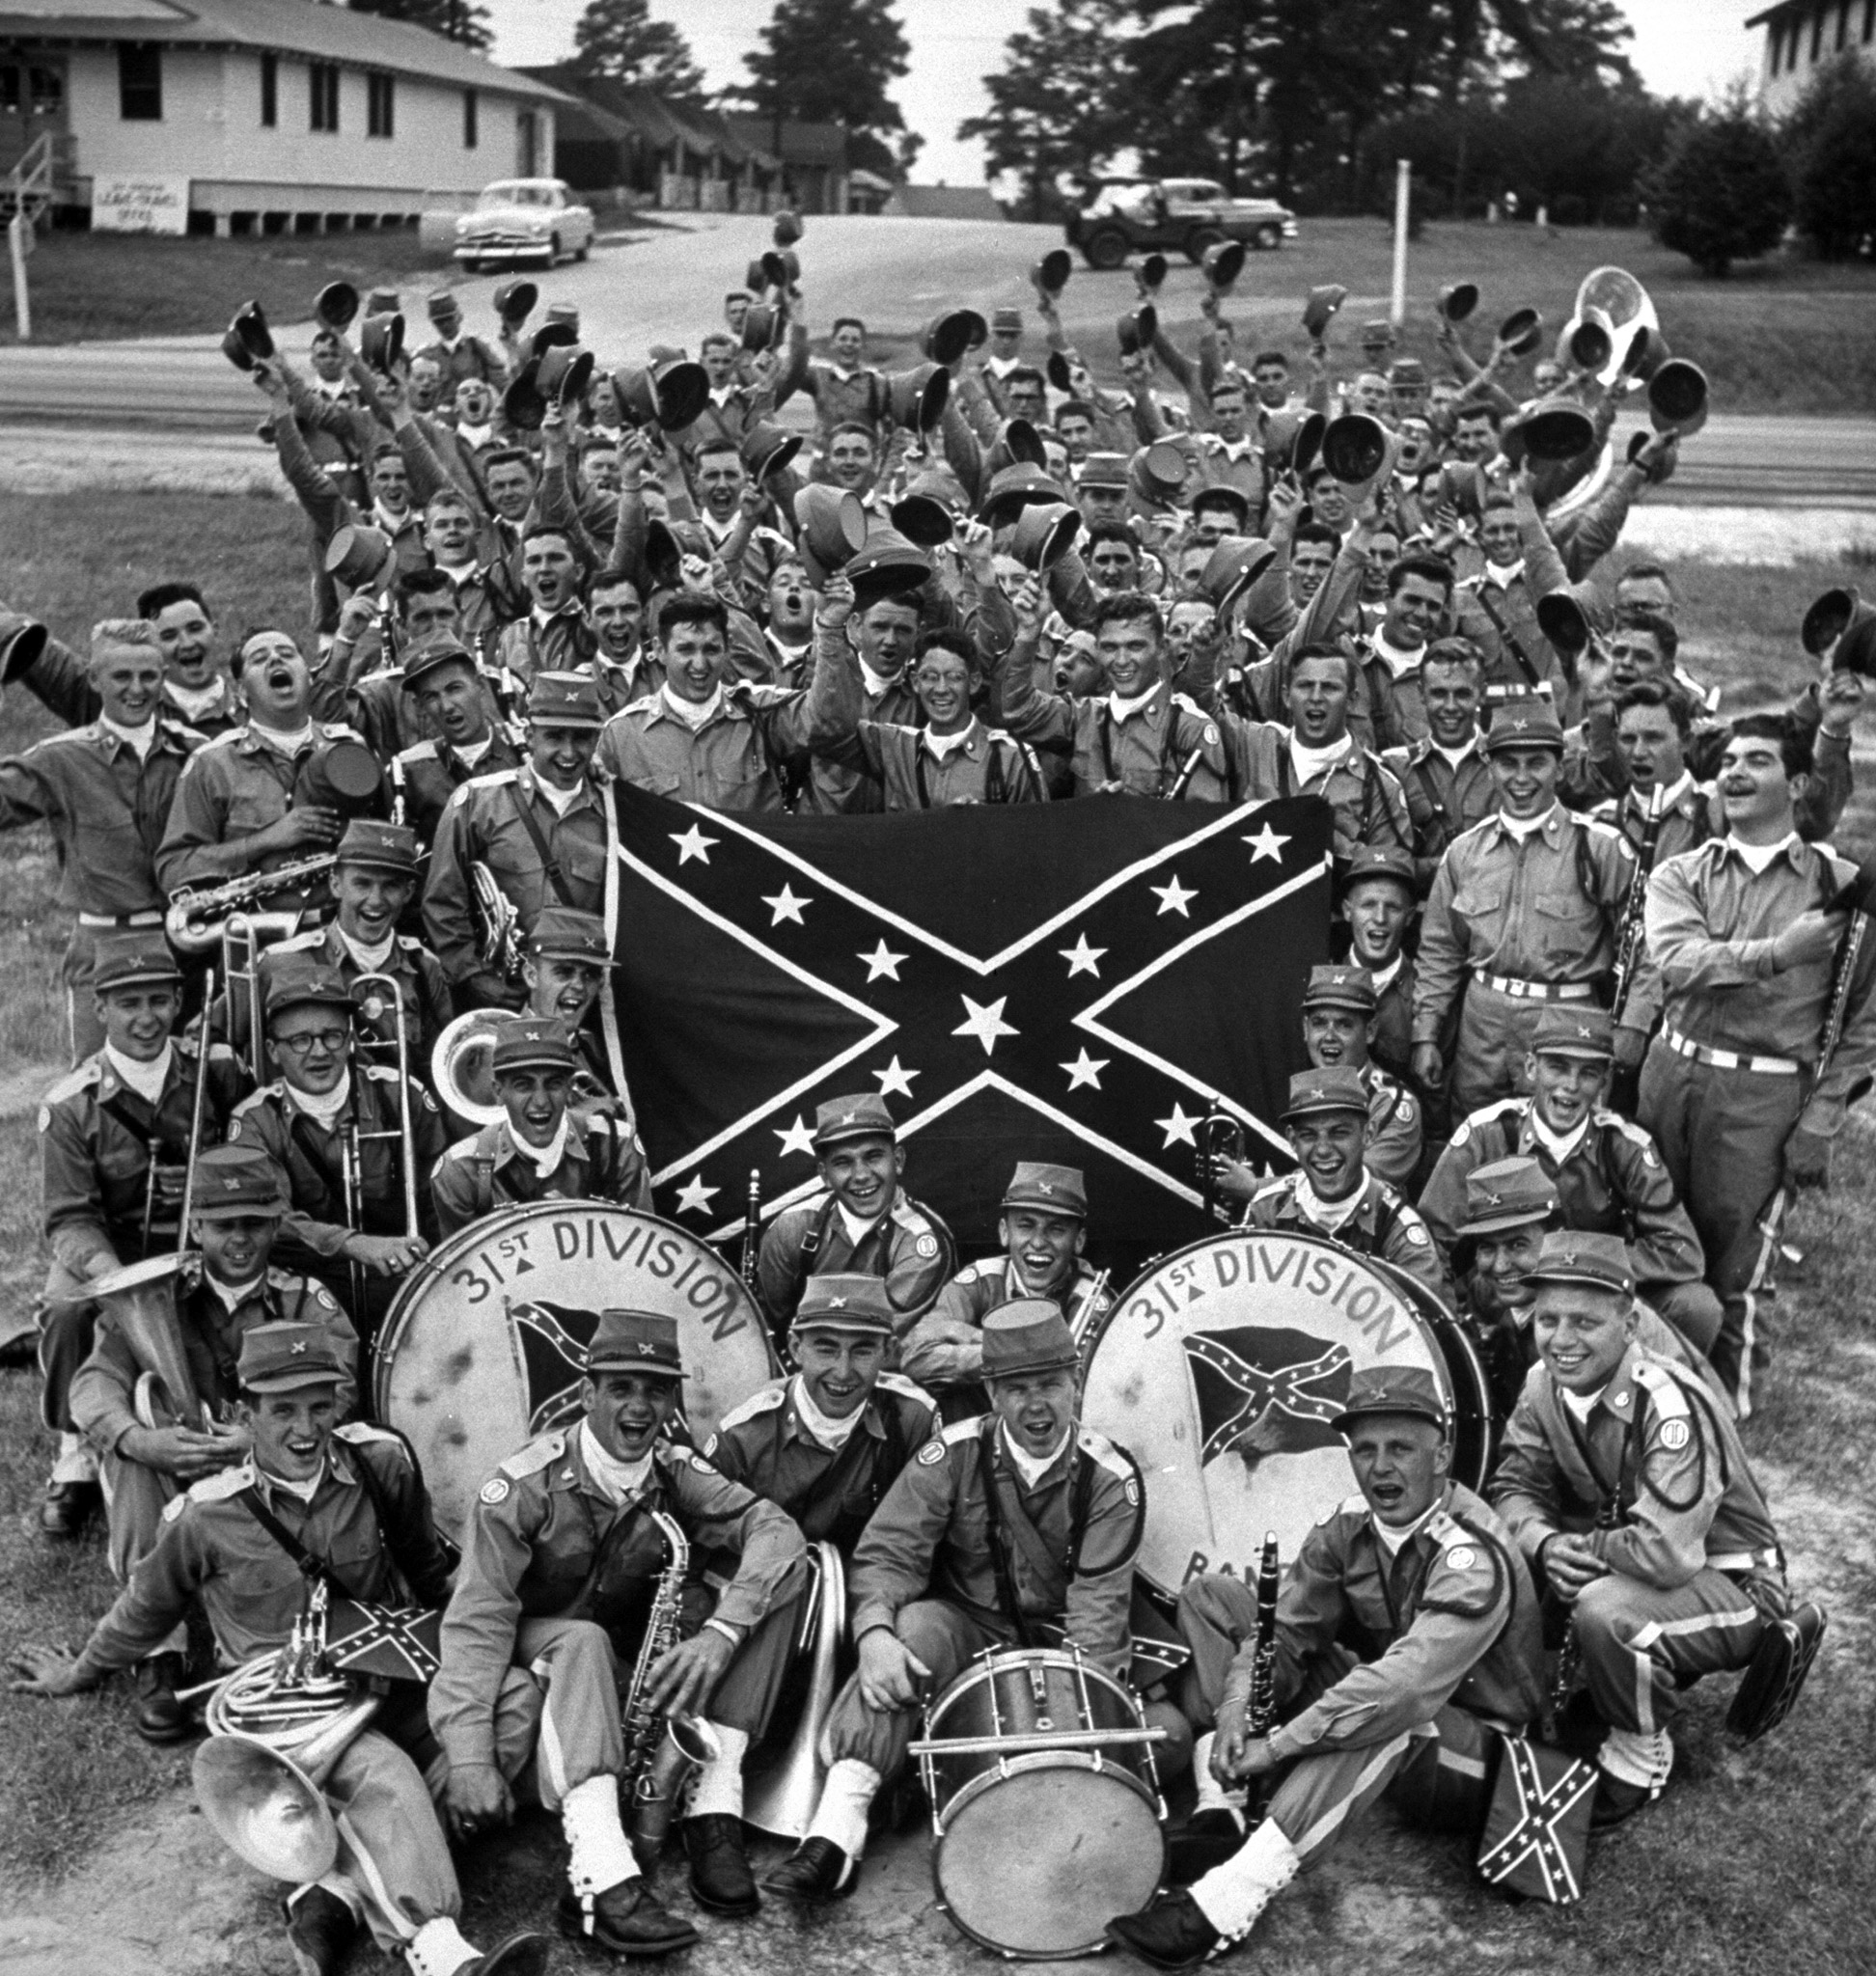 31st Division Band displaying the Confederate flag.